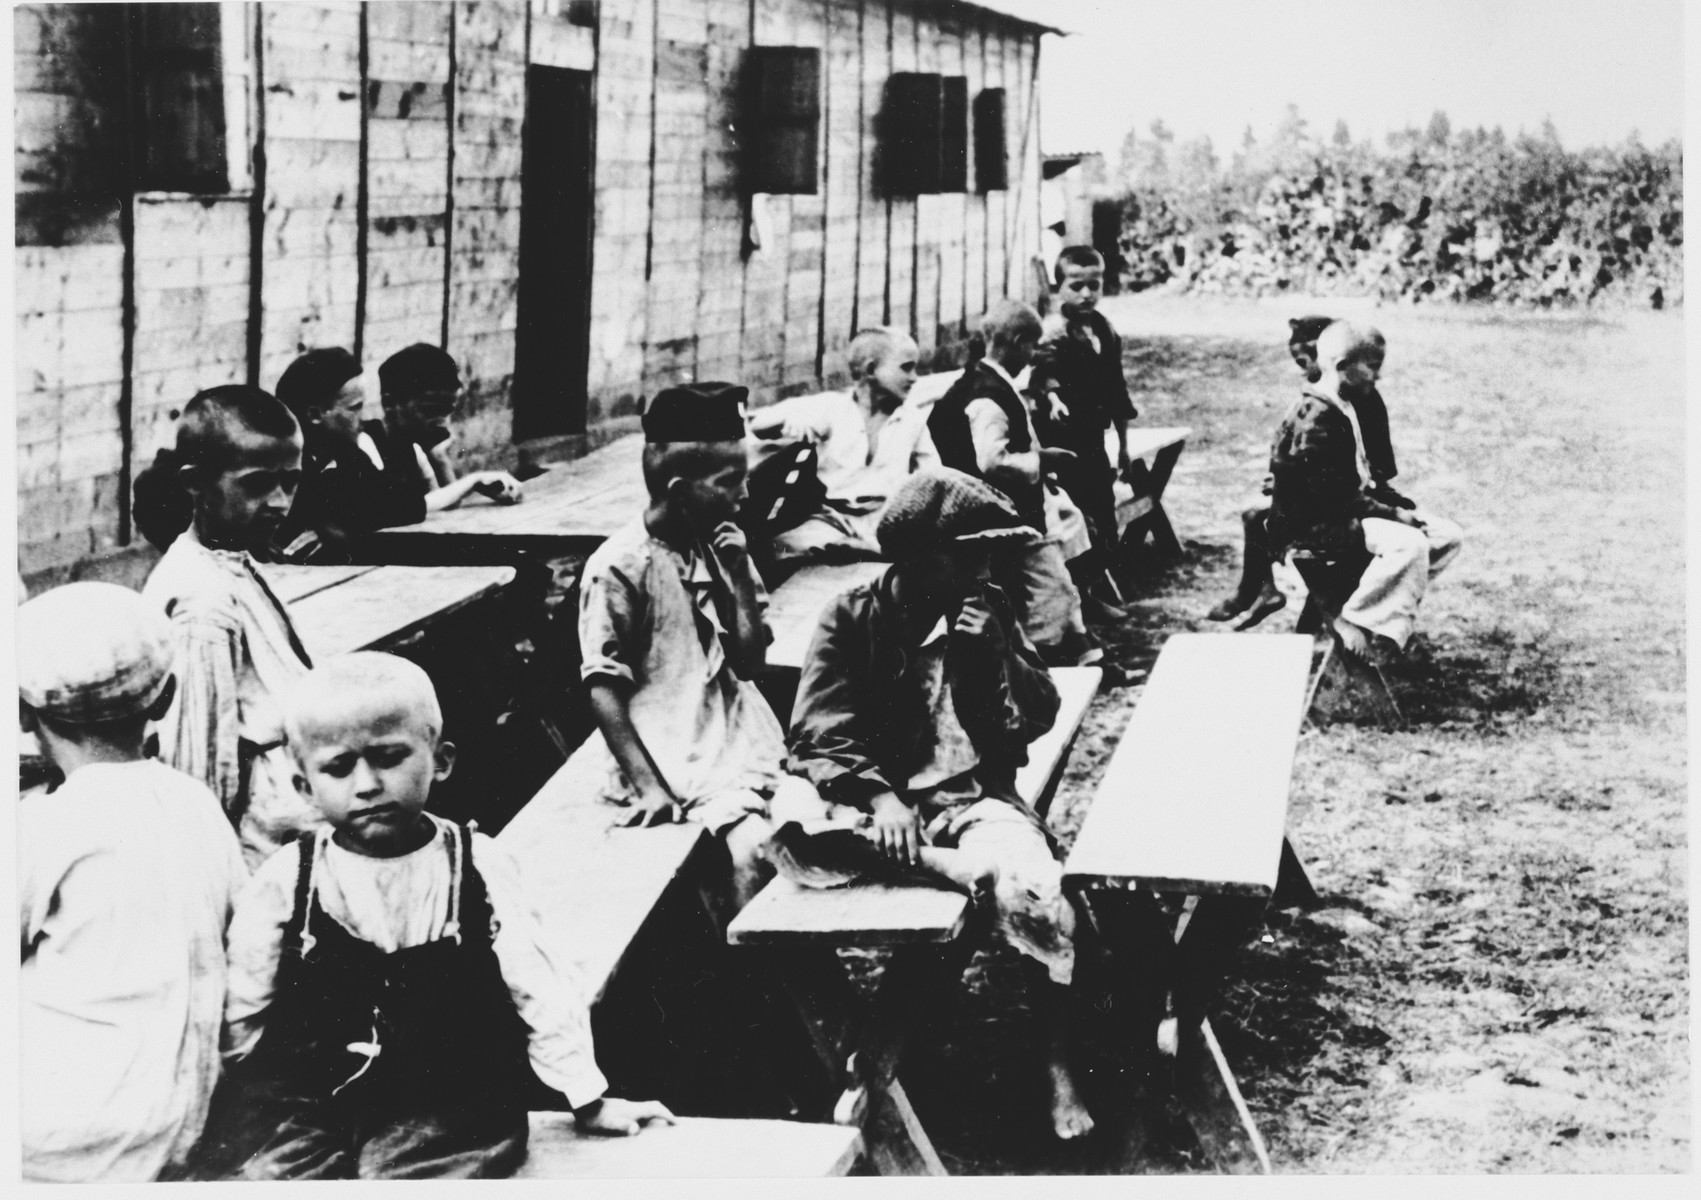 Children sit on benches outside a barracks in the Gornja Rijeka concentration camp.